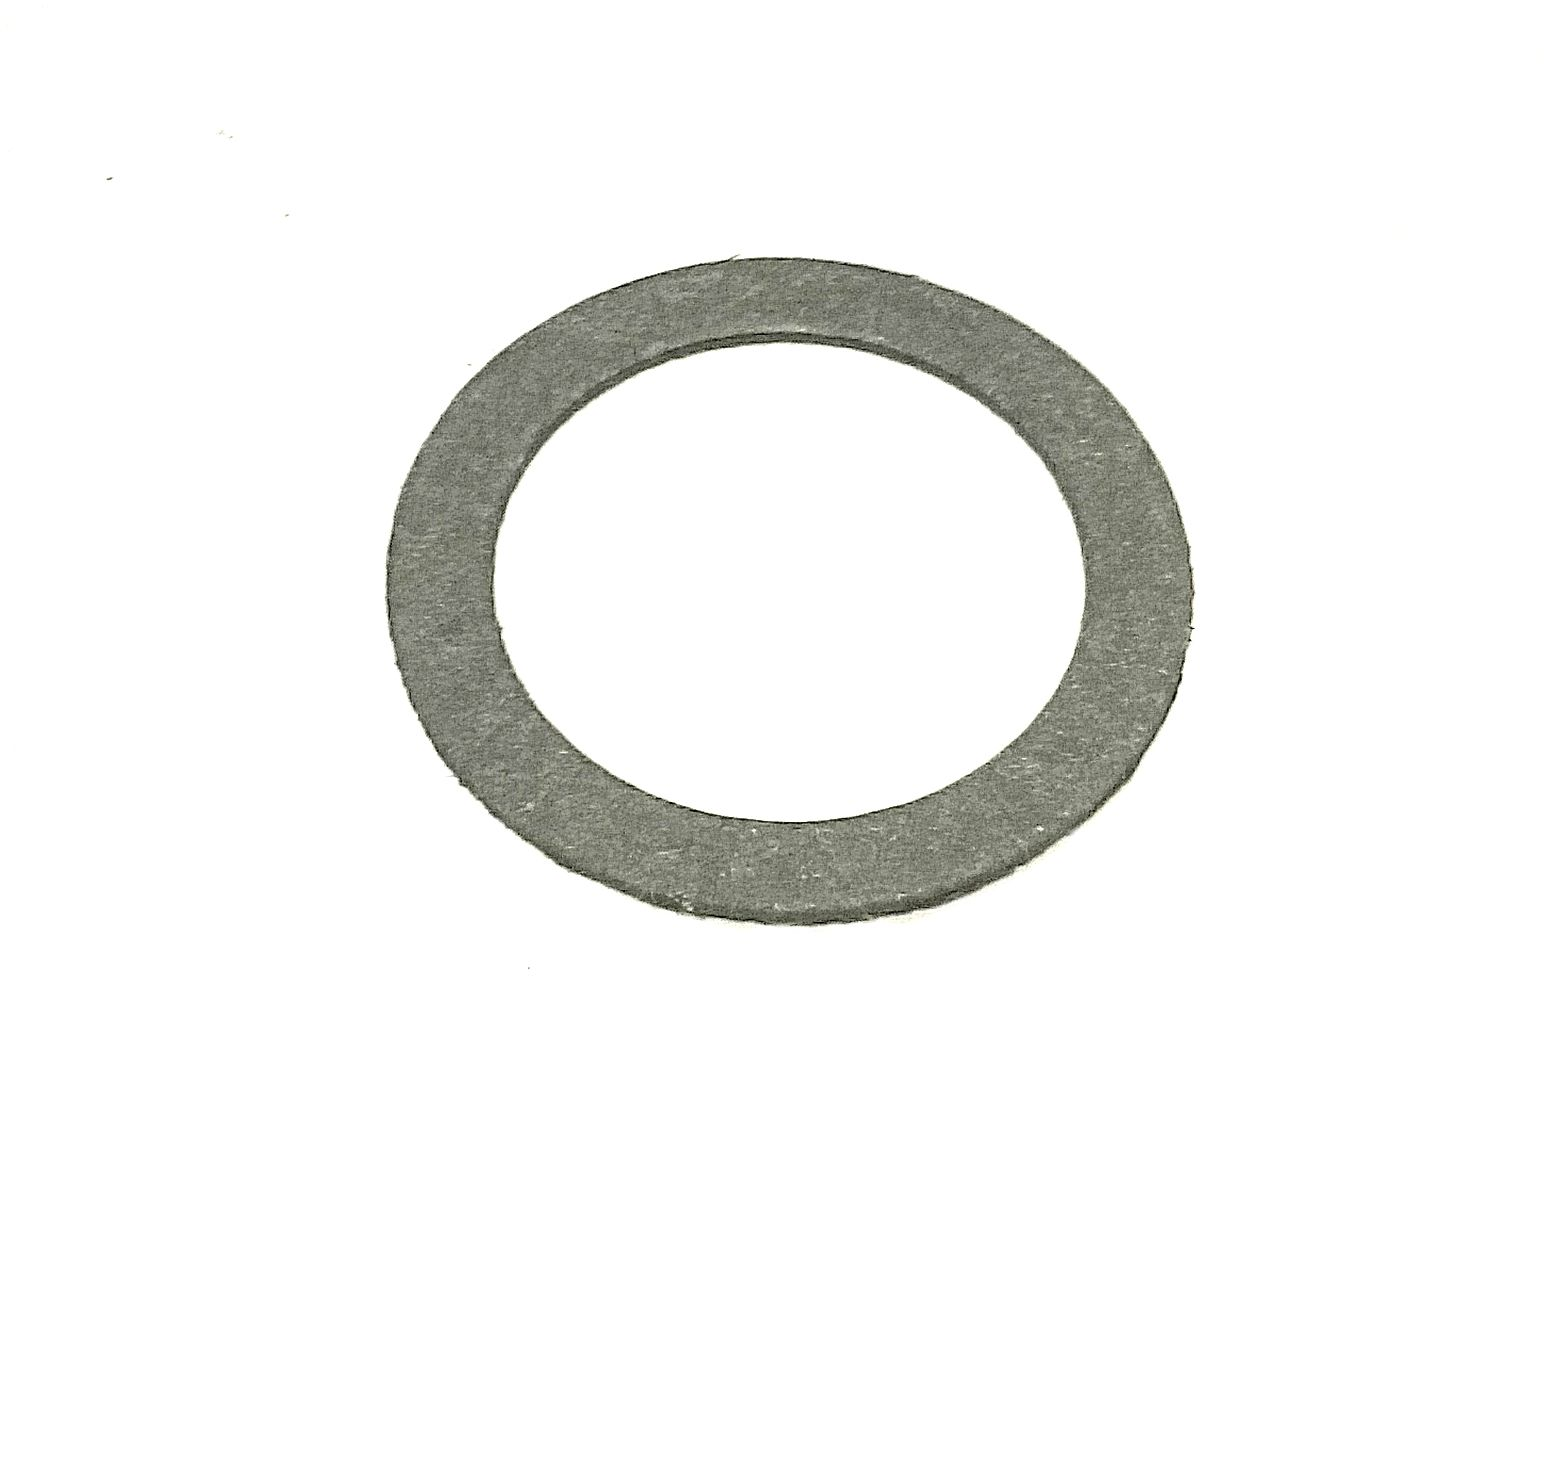 Tractor Air Cleaner Gasket : Air cleaner filter gasket briggs stratton  s